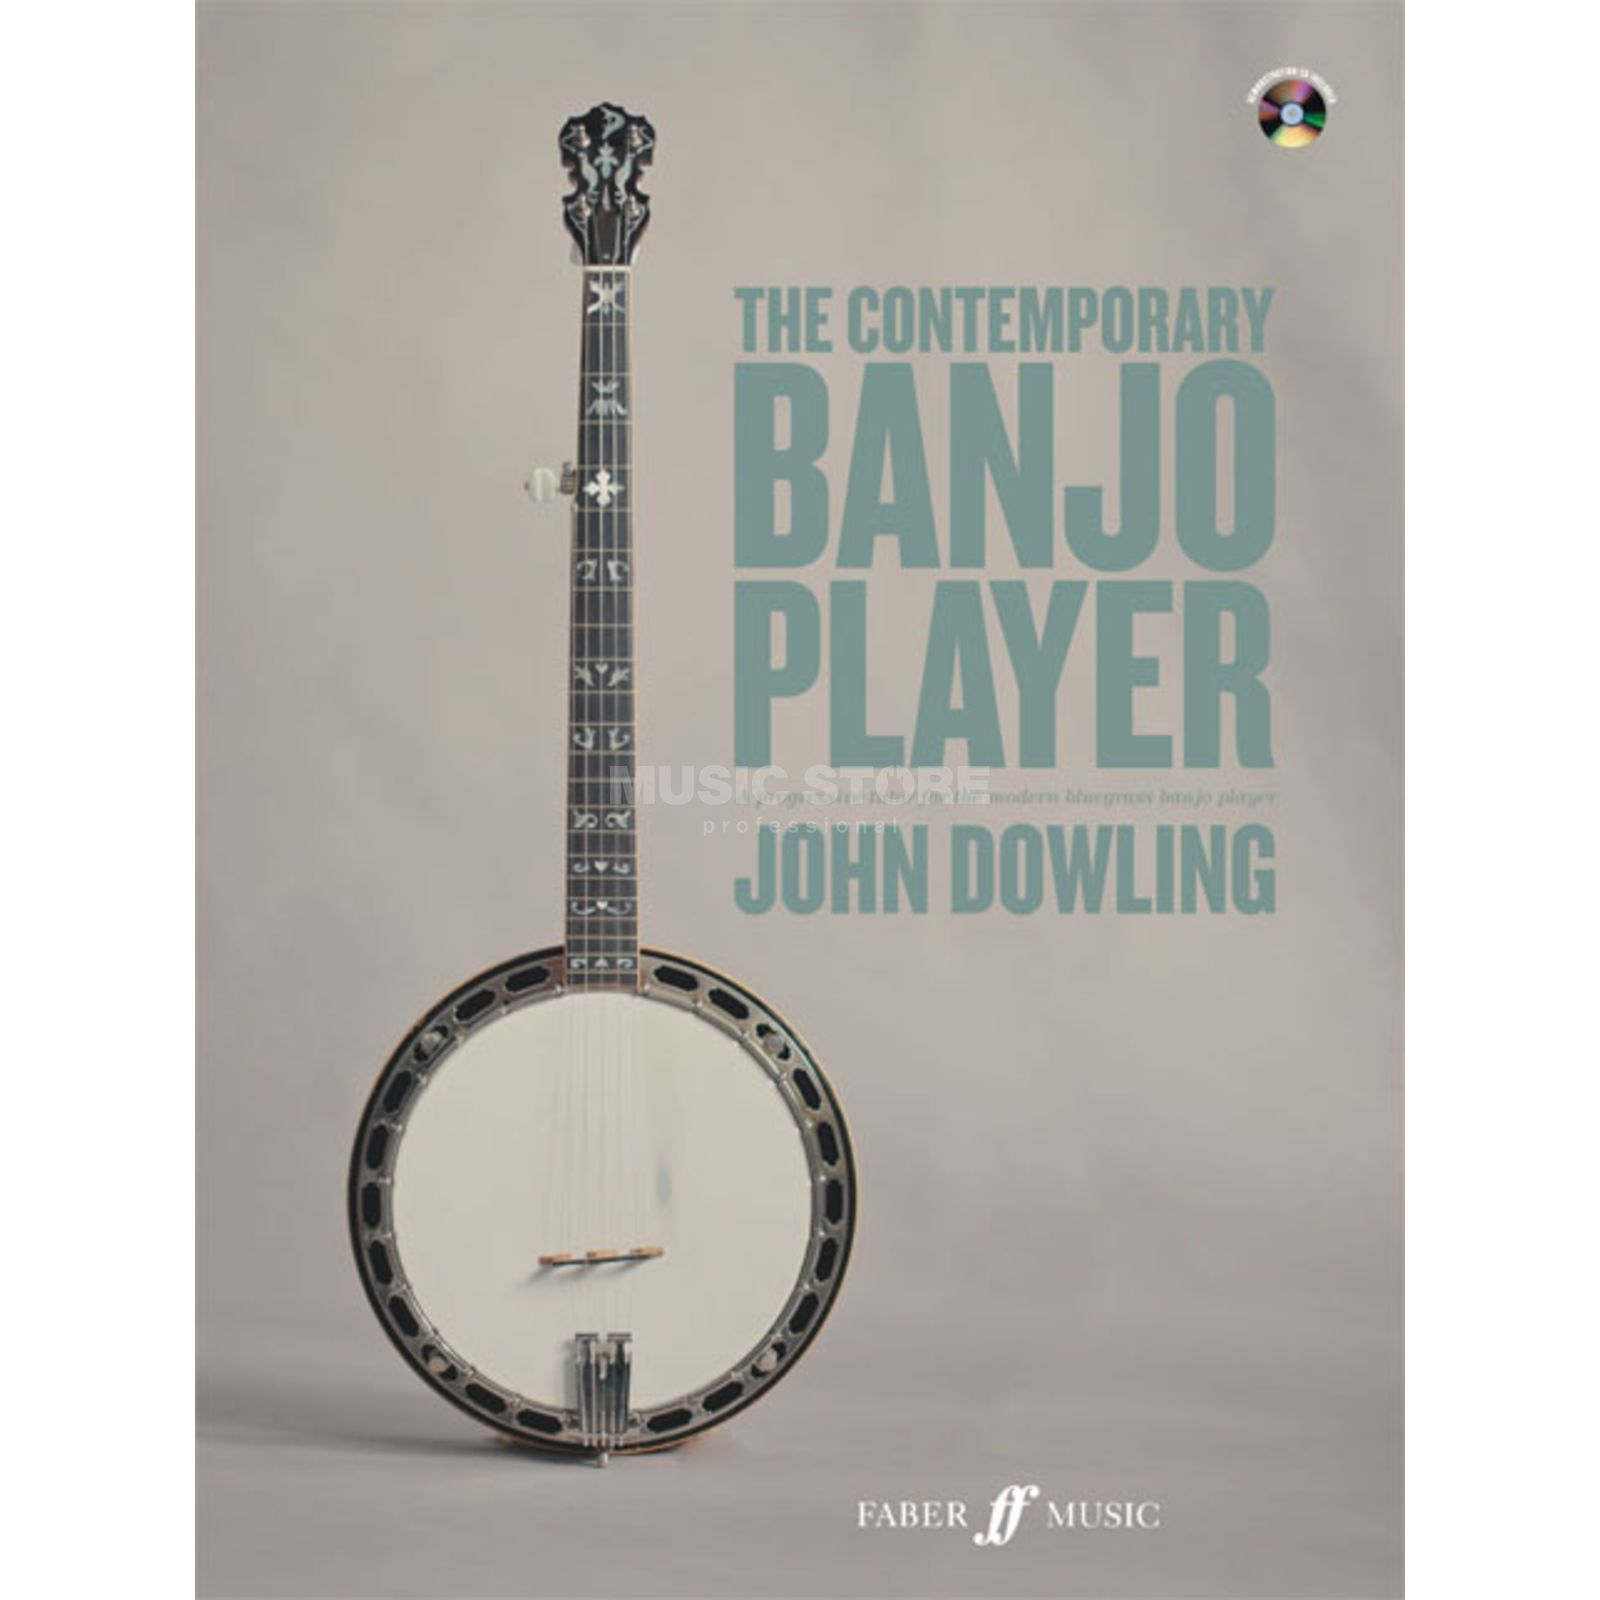 Faber Music The Contemporary Banjo Player John Dowling Produktbillede